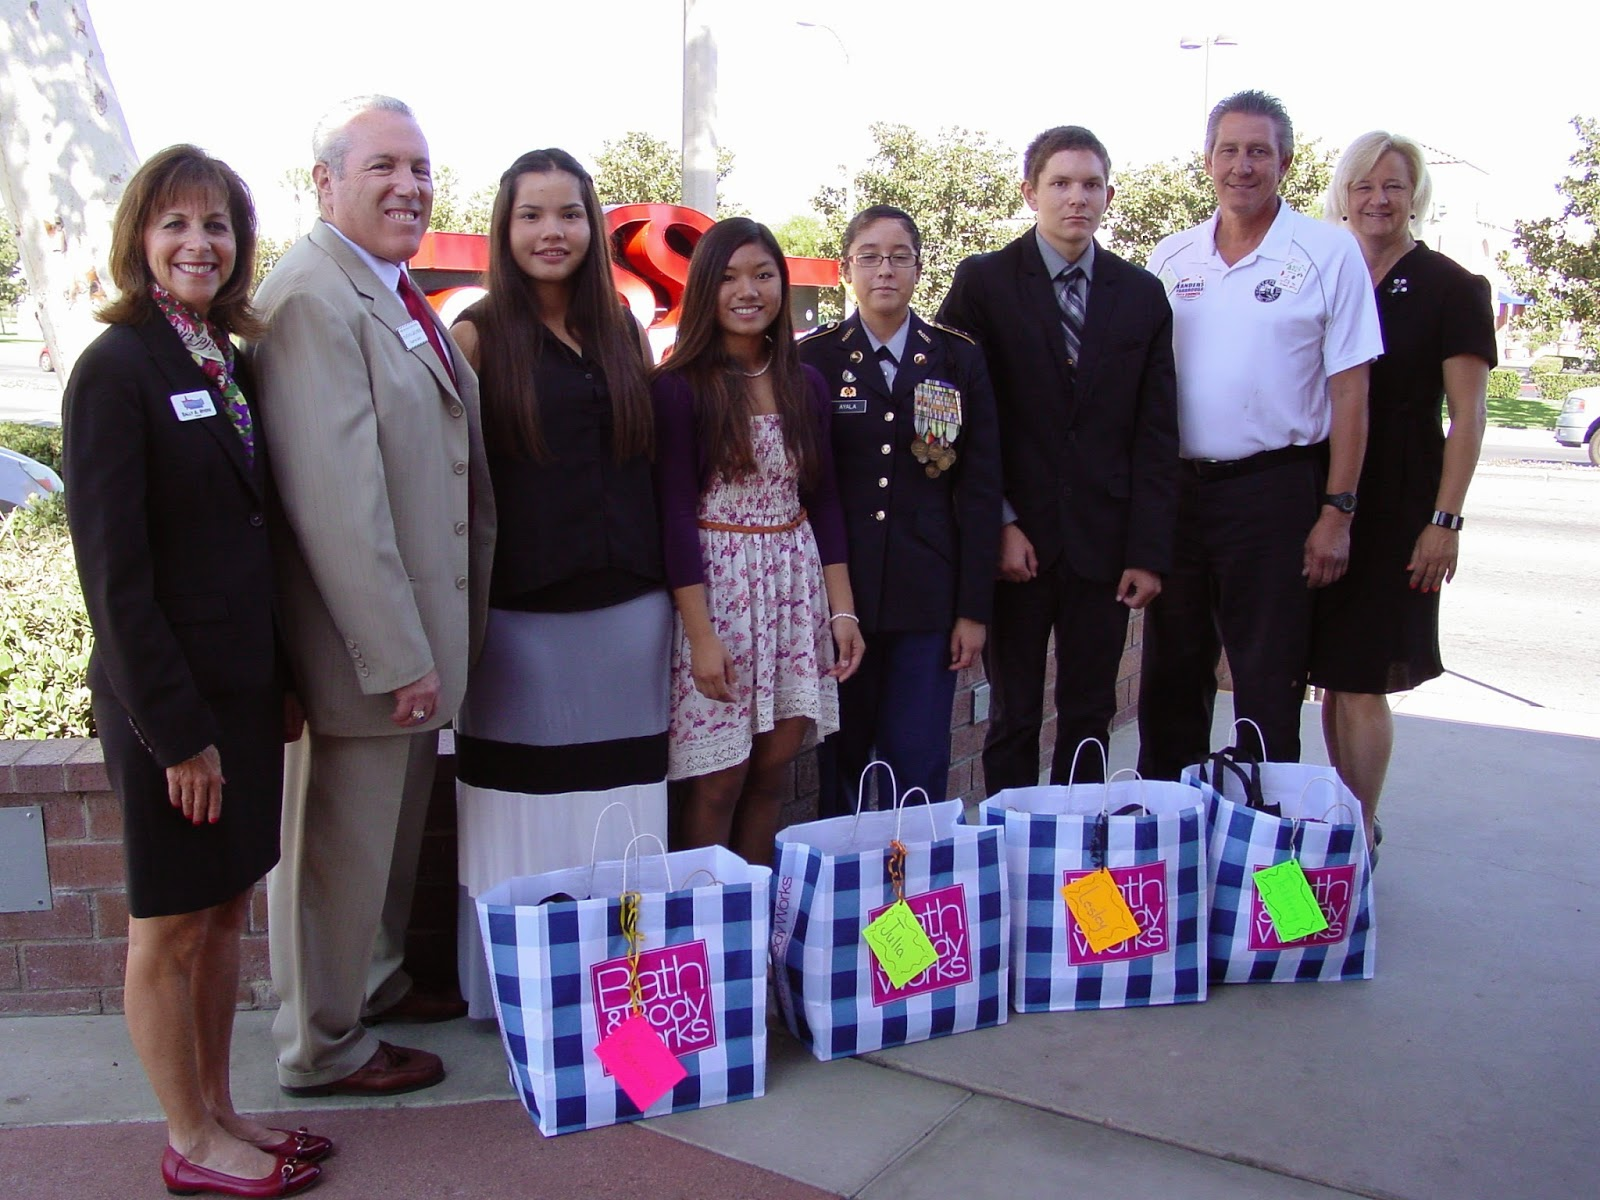 Anne Duarte Escort perris union hs district honors students of the month